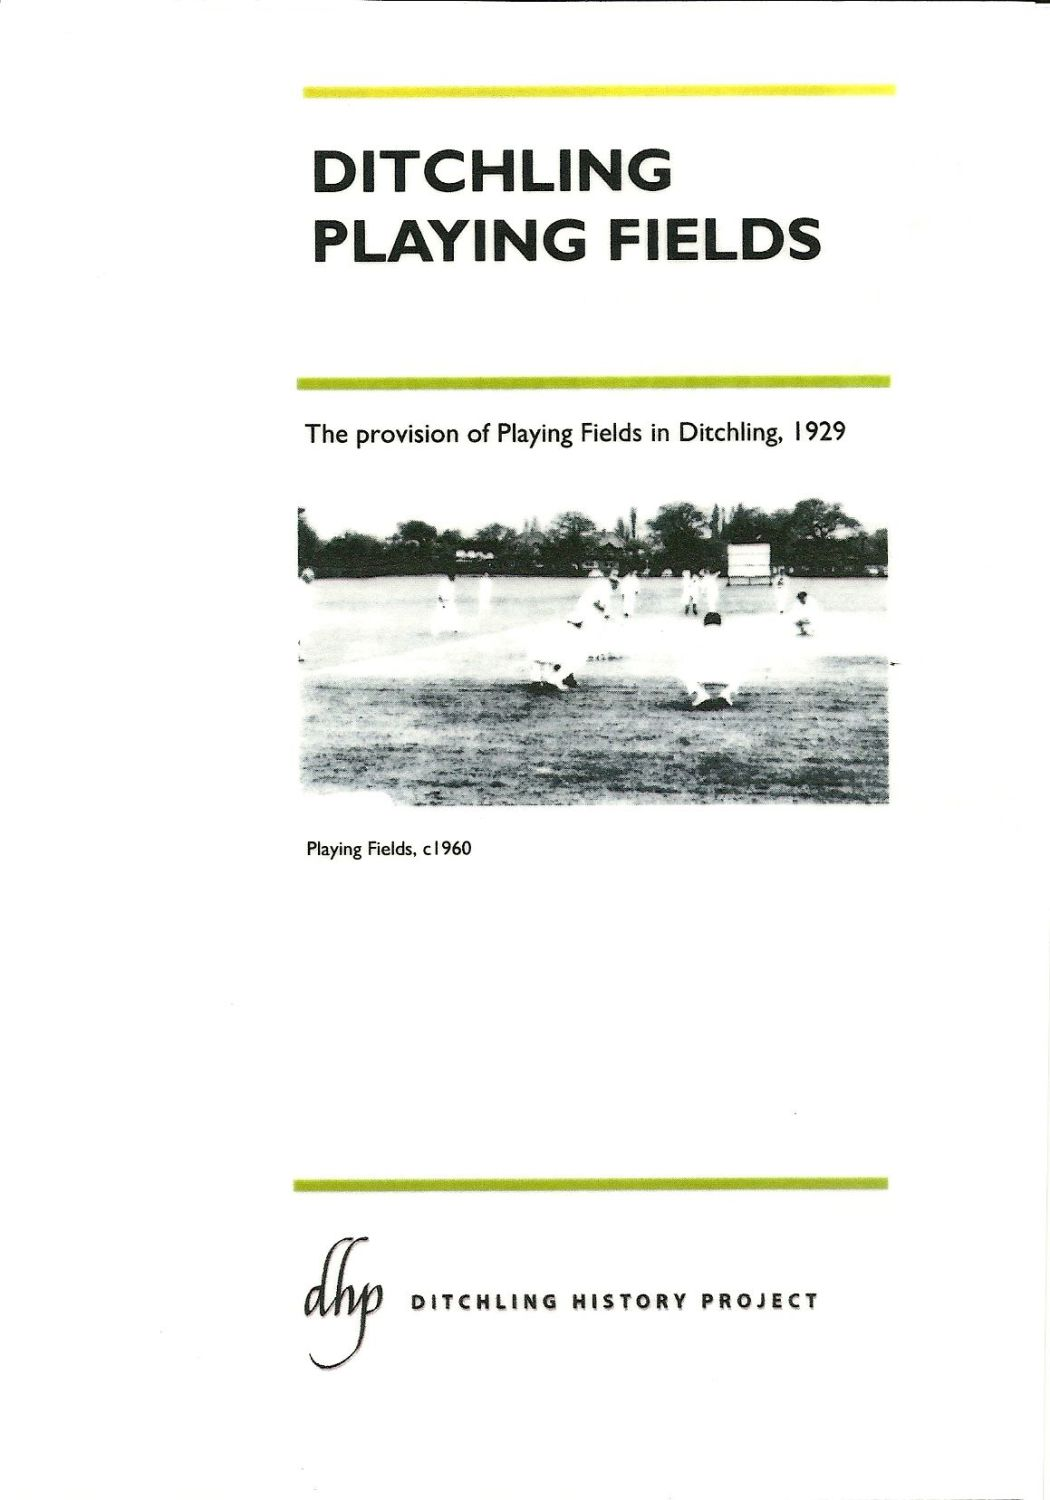 Ditchling Playing Fields